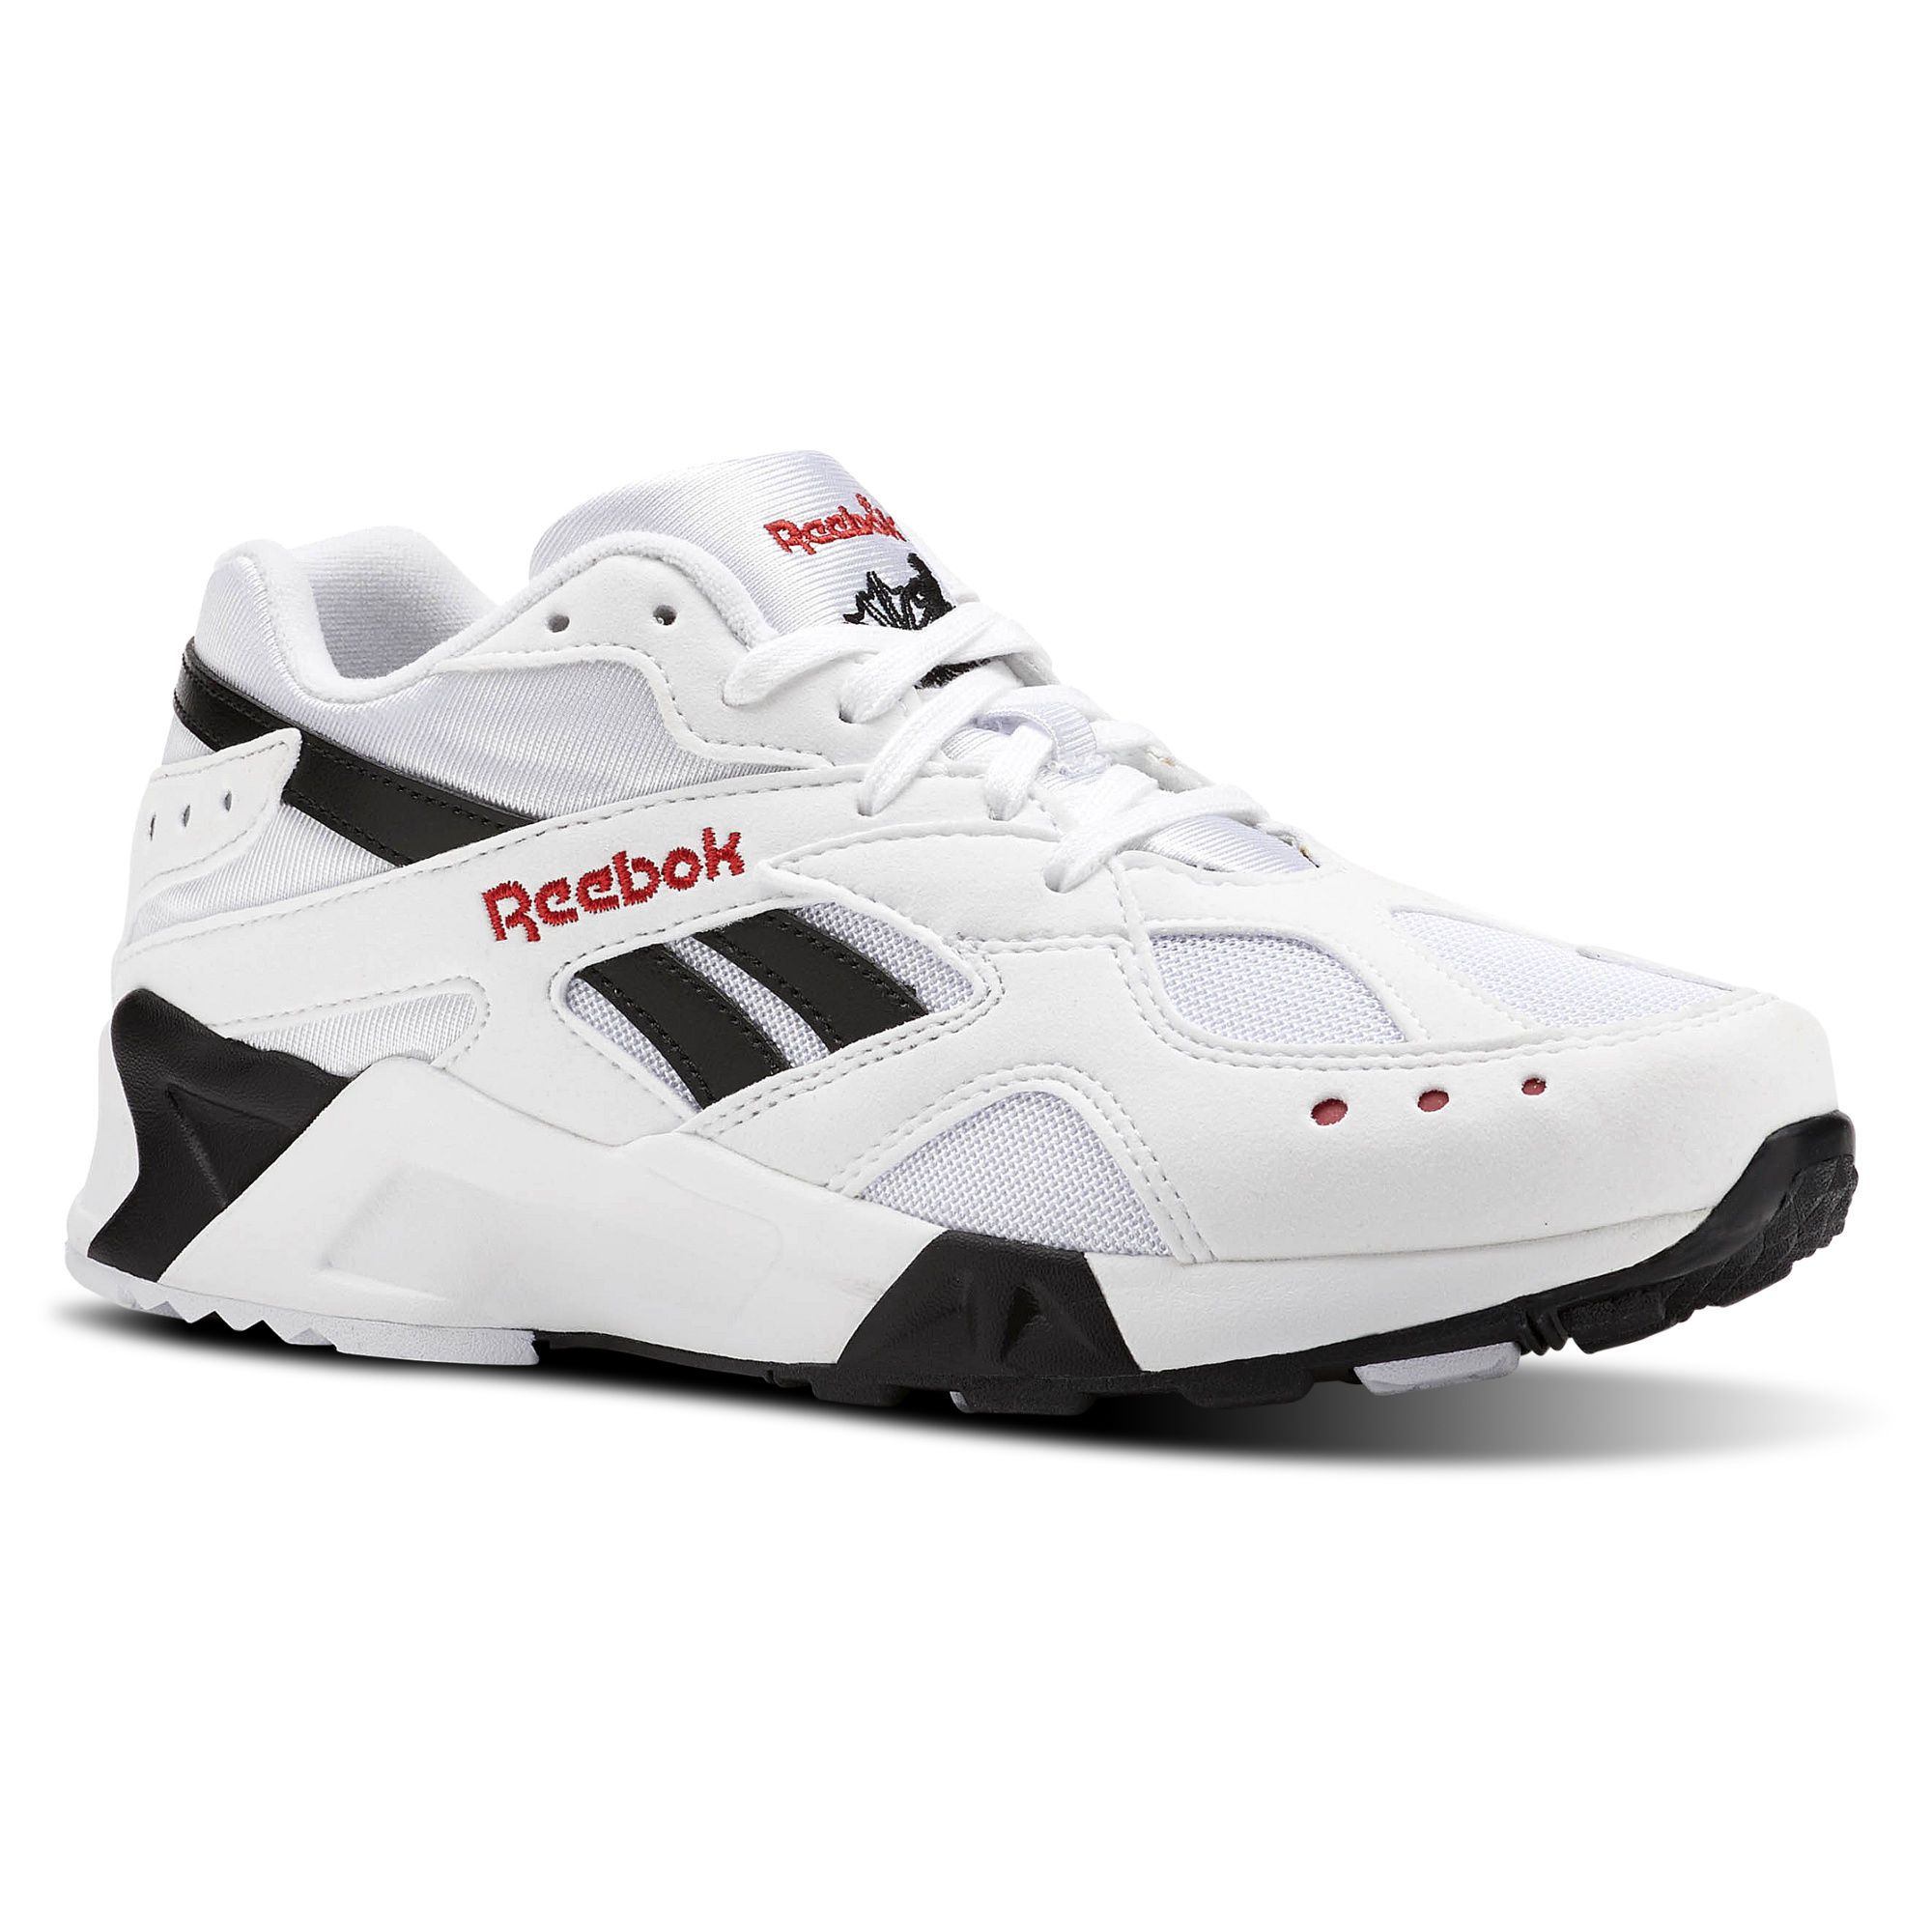 Shop for Reebok Aztrek - White at reebok.com. See all the styles and colors  of Reebok Aztrek - White at the official Reebok US online store. b345a2572